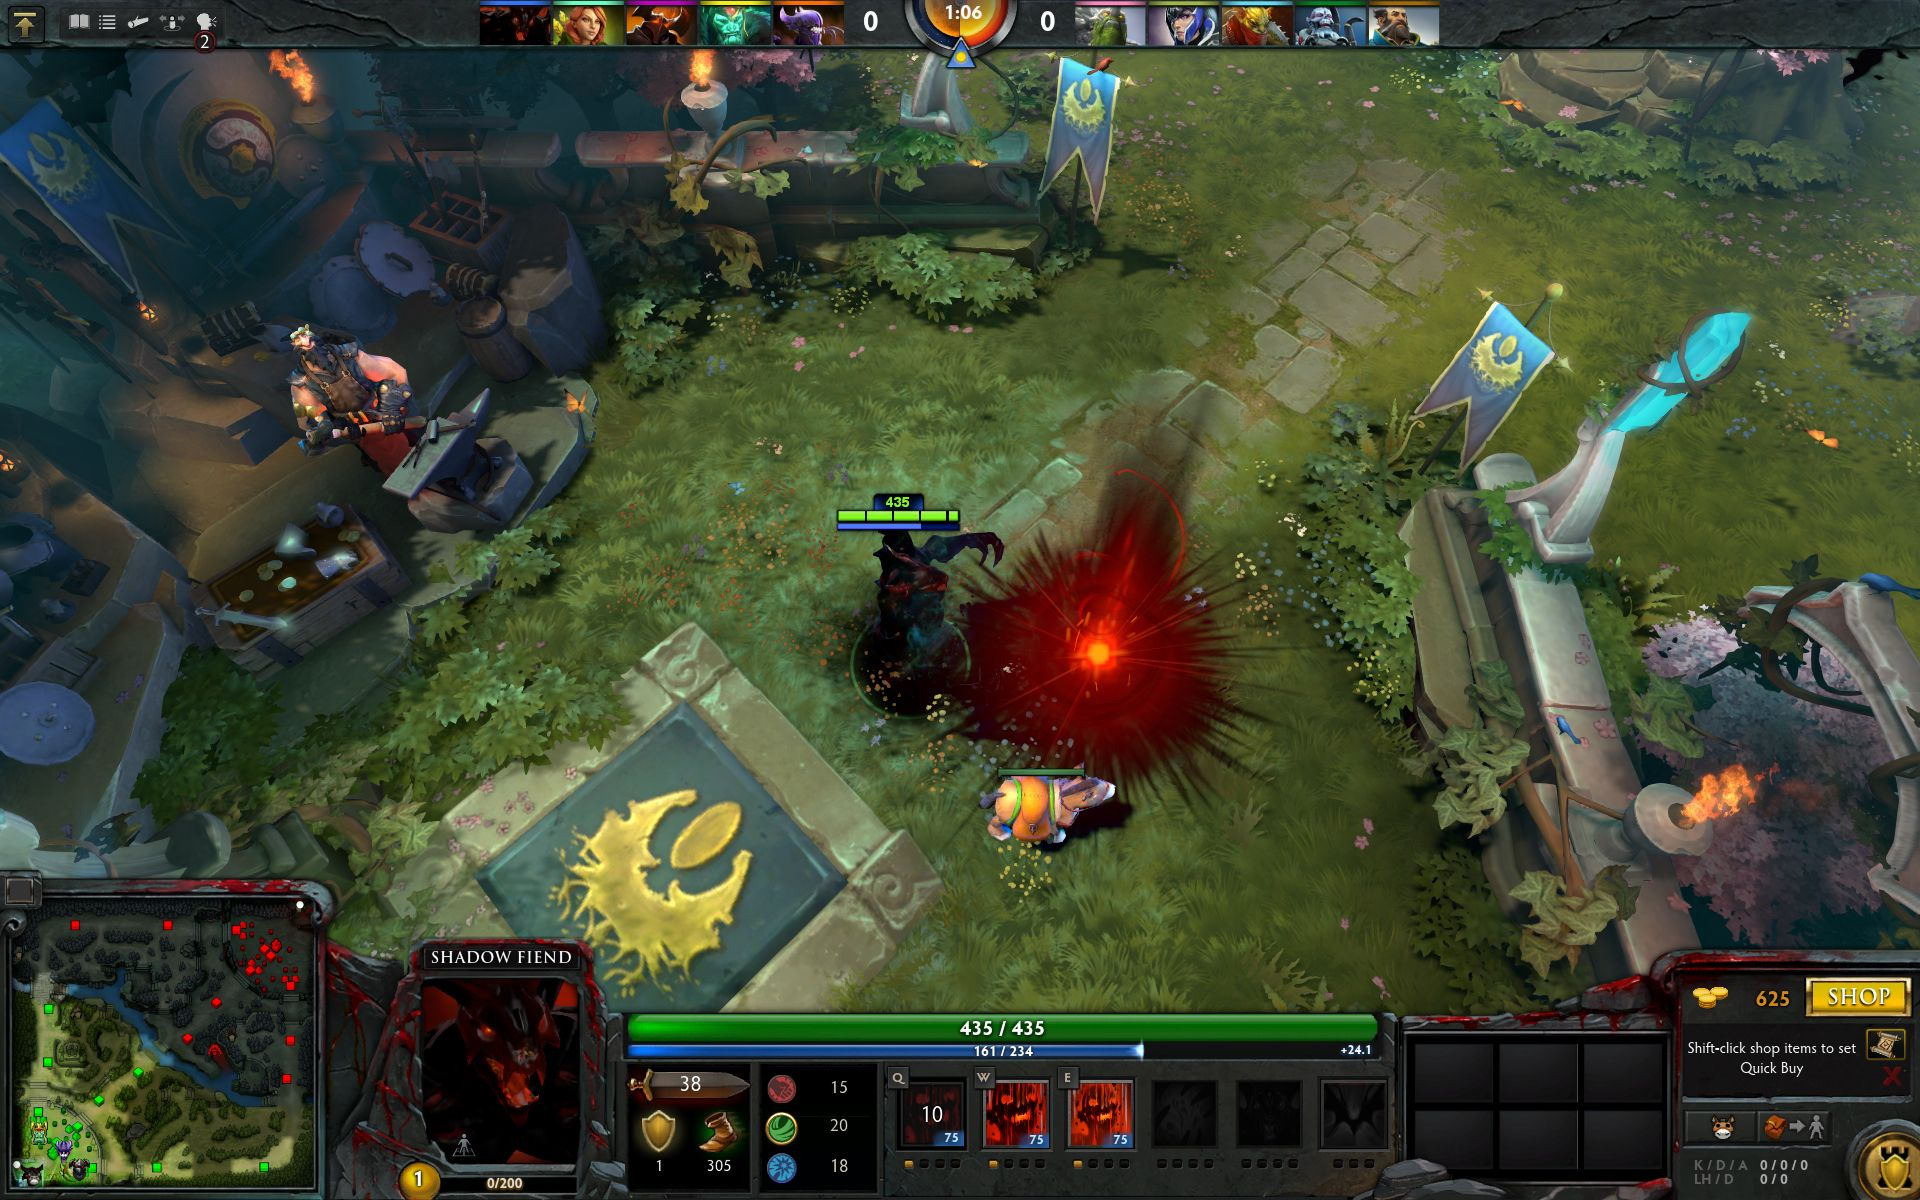 dota 2 source 1 shadowfiend no particles 2 jpg 1920 1200 army